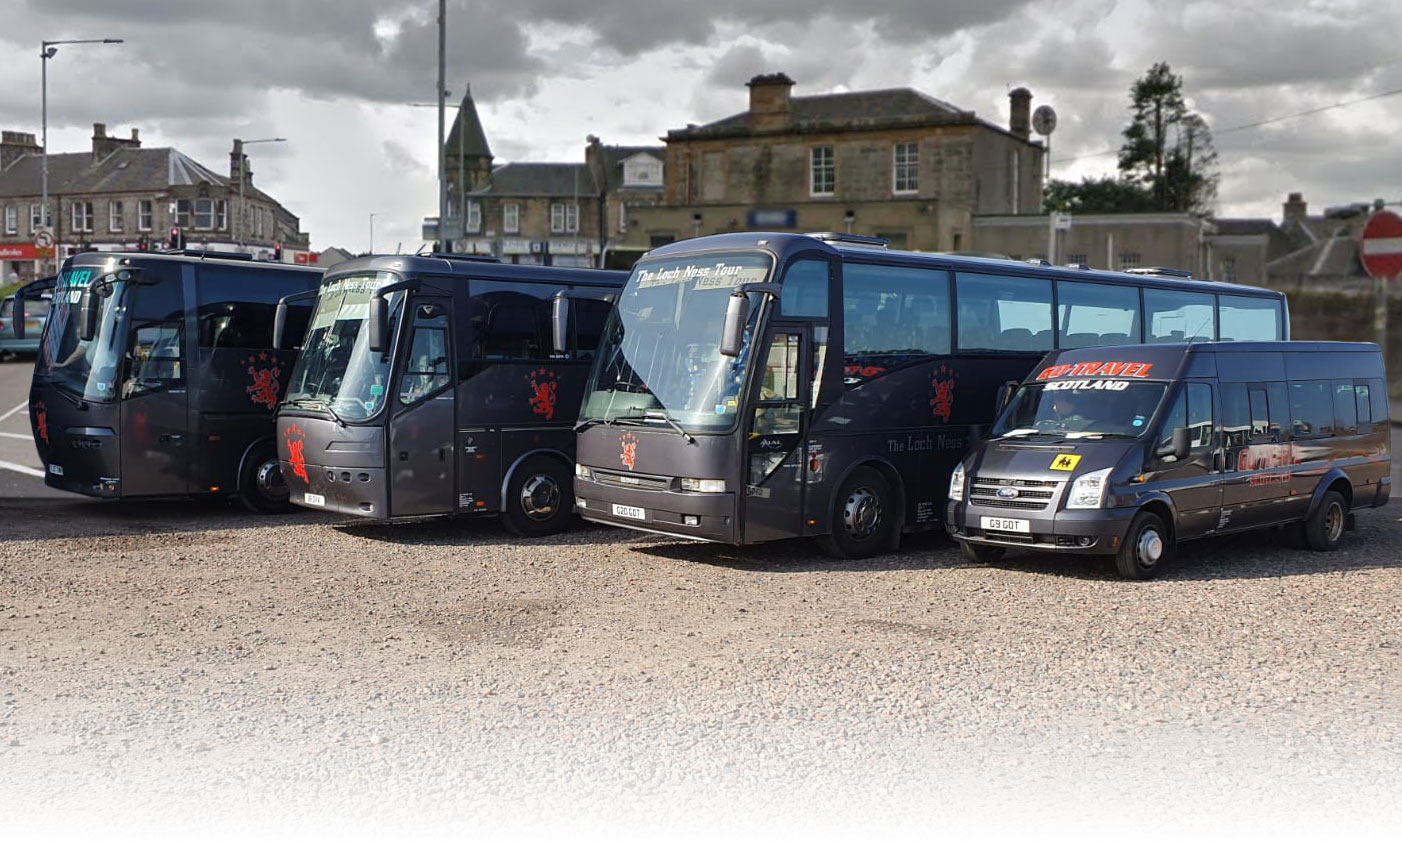 Coach Hire Carluke - Go Travel Luxury Coach and Minibus Hire